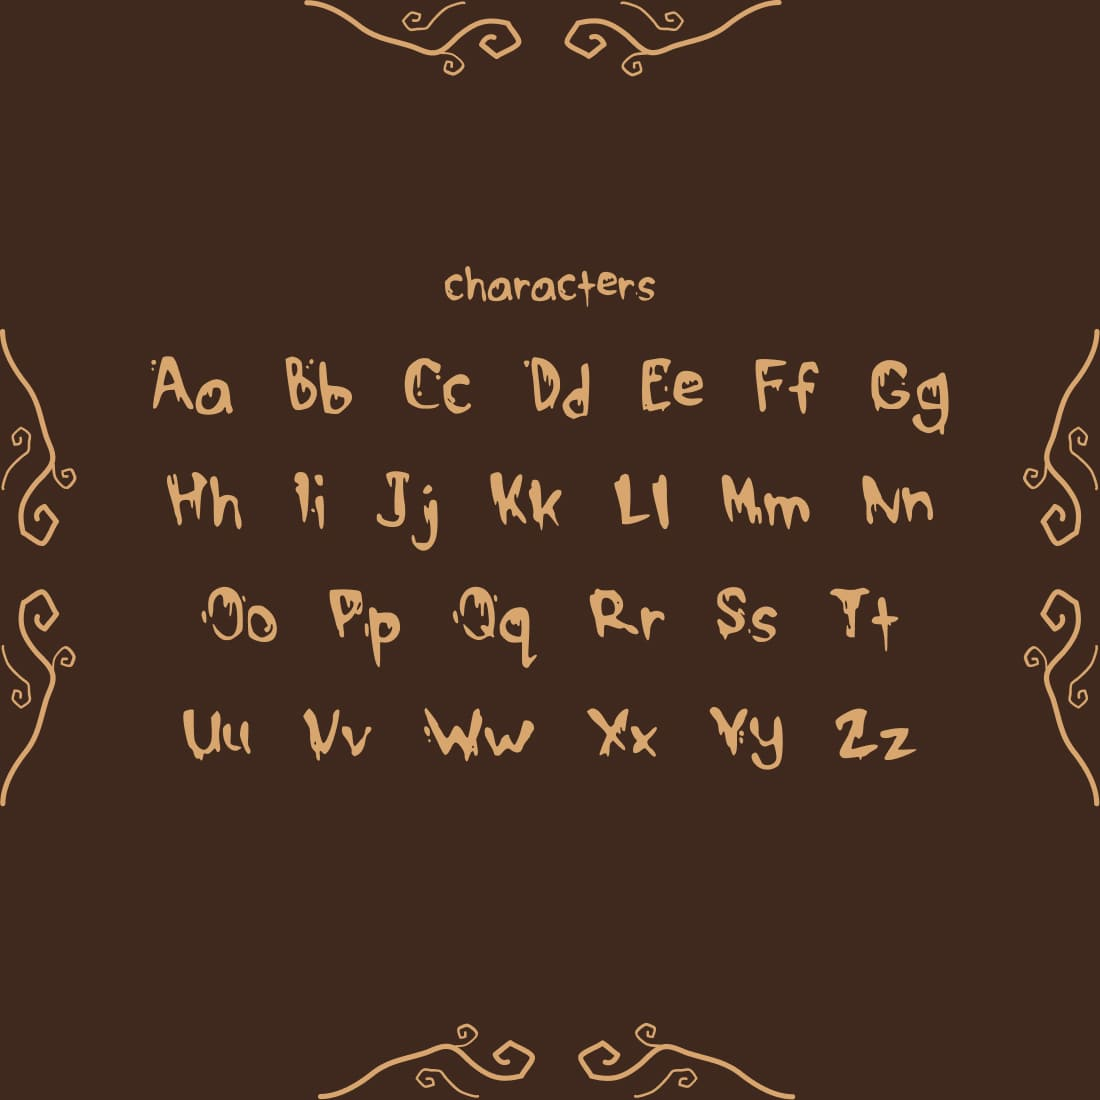 MasterBundles Free Drippy Font Cover with Characters.